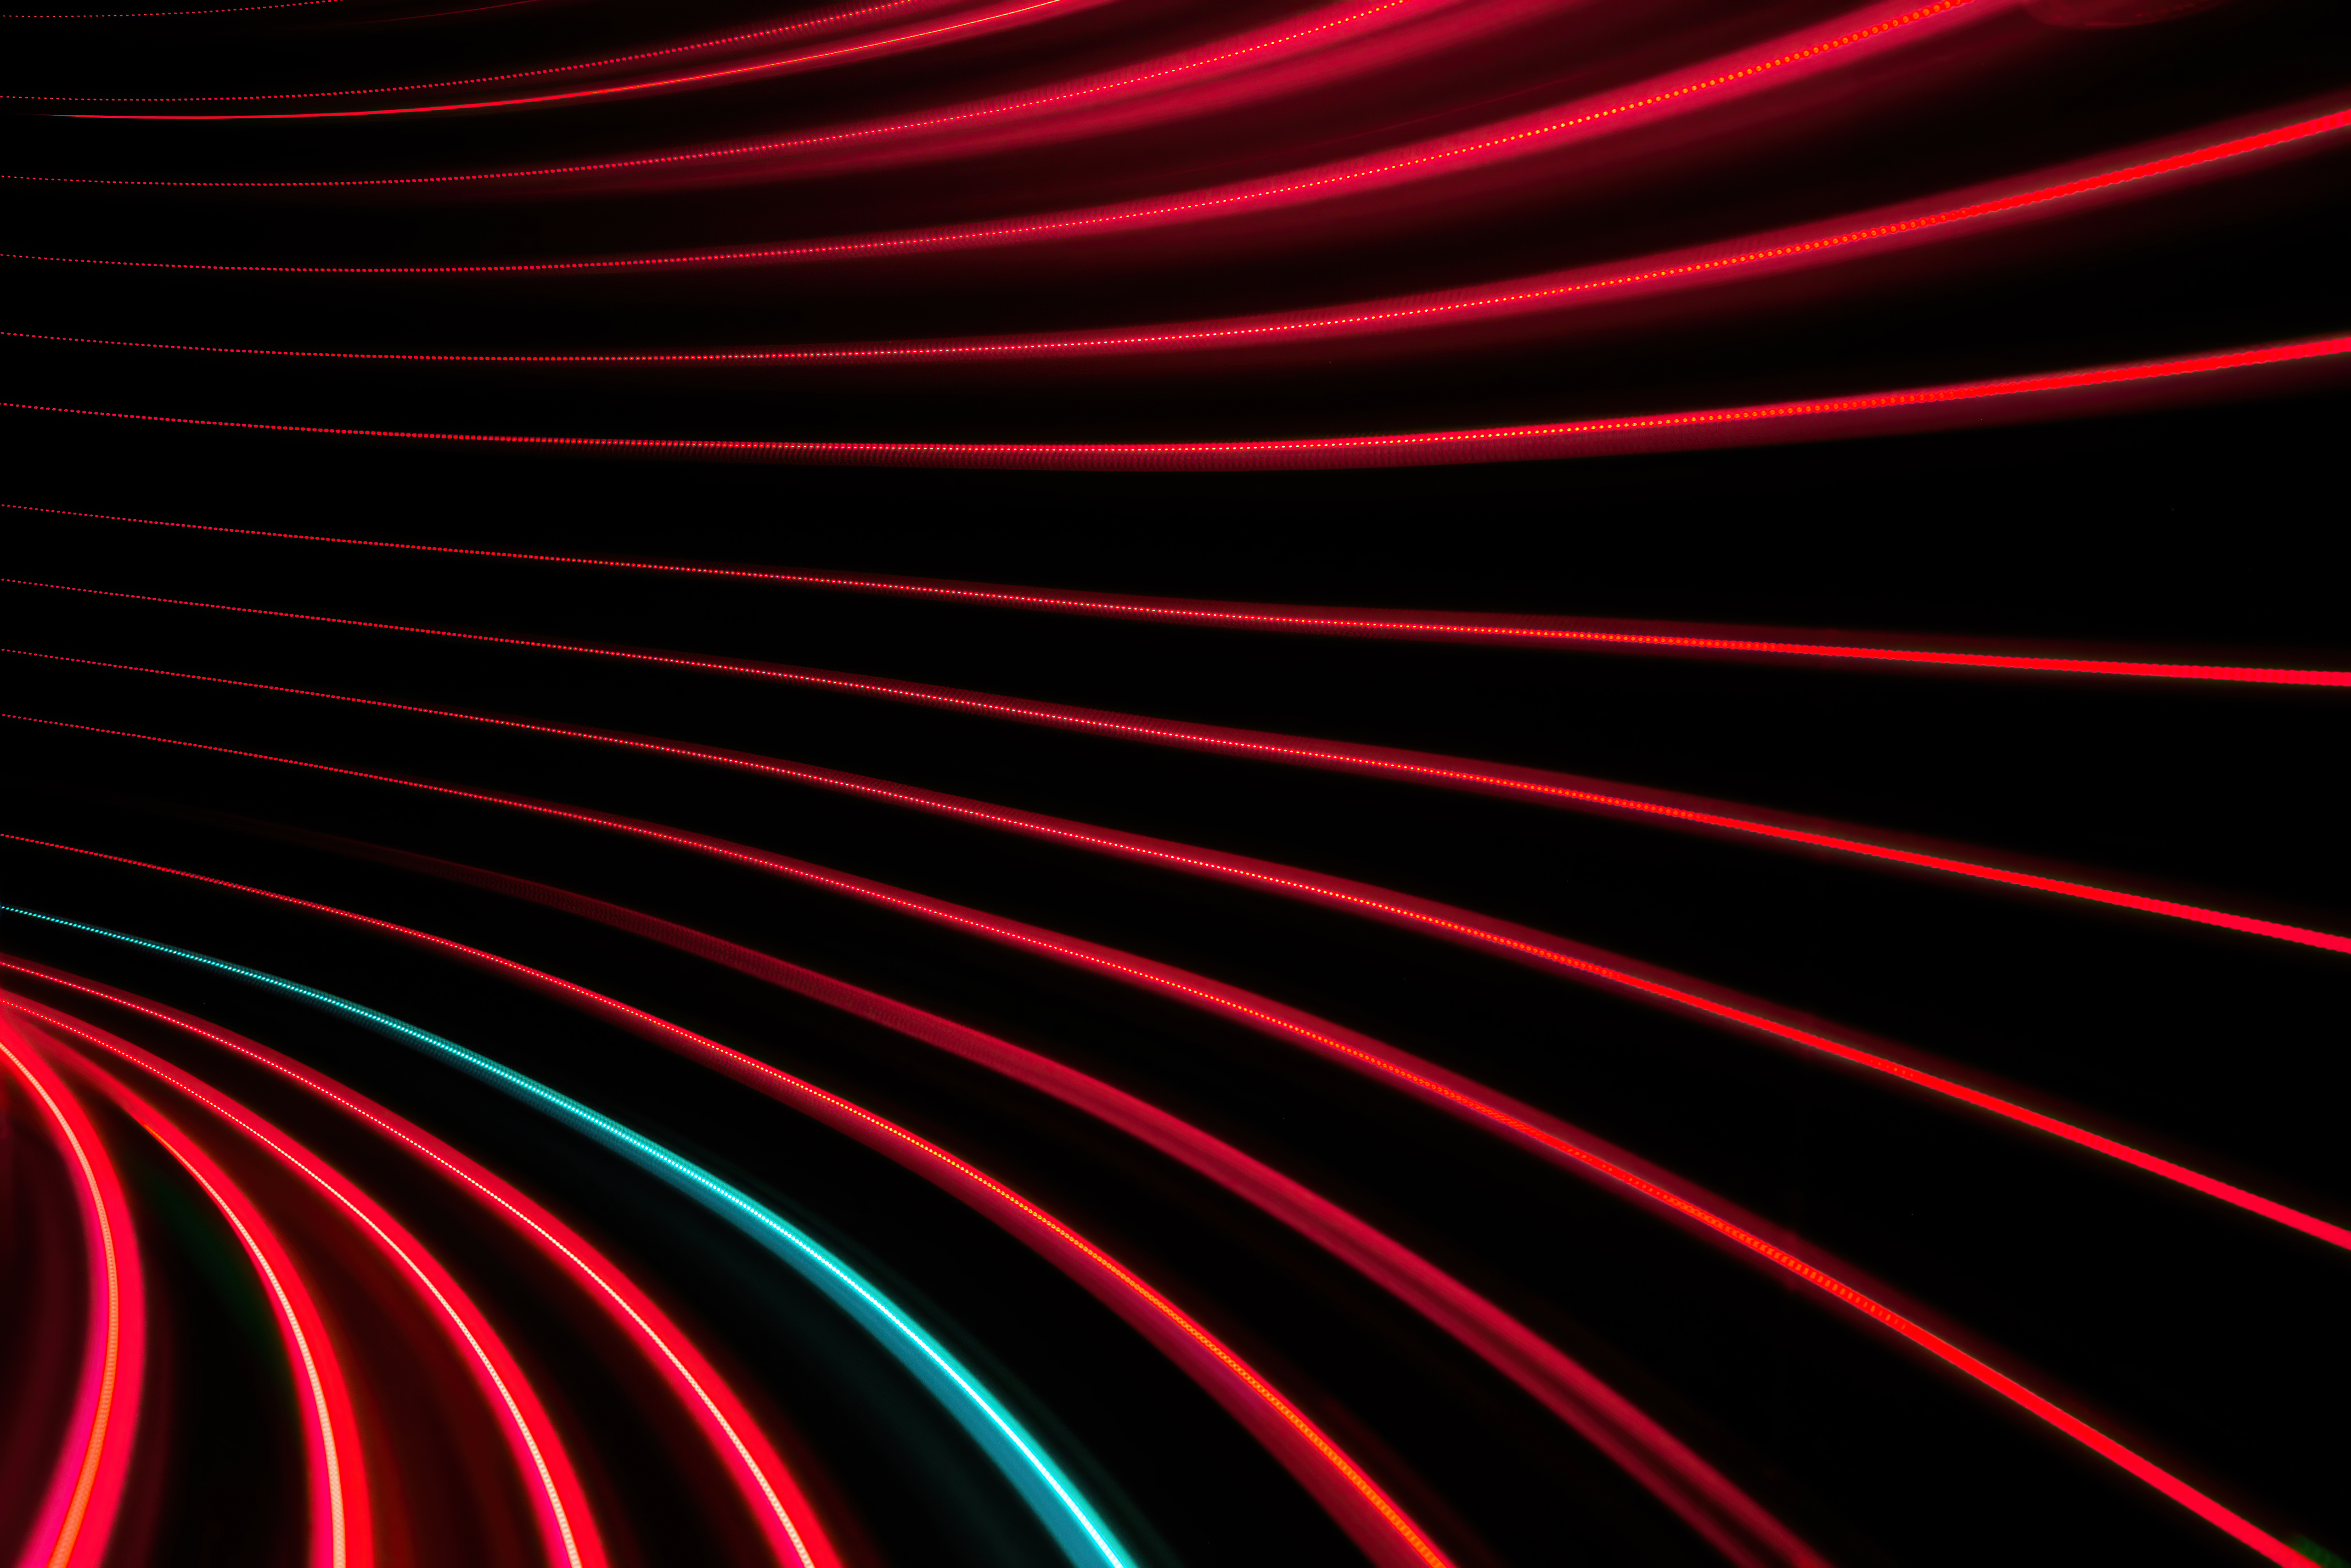 red and black swirl pattern 4k 1620165330 - Red And Black Swirl Pattern 4k - Red And Black Swirl Pattern 4k wallpapers